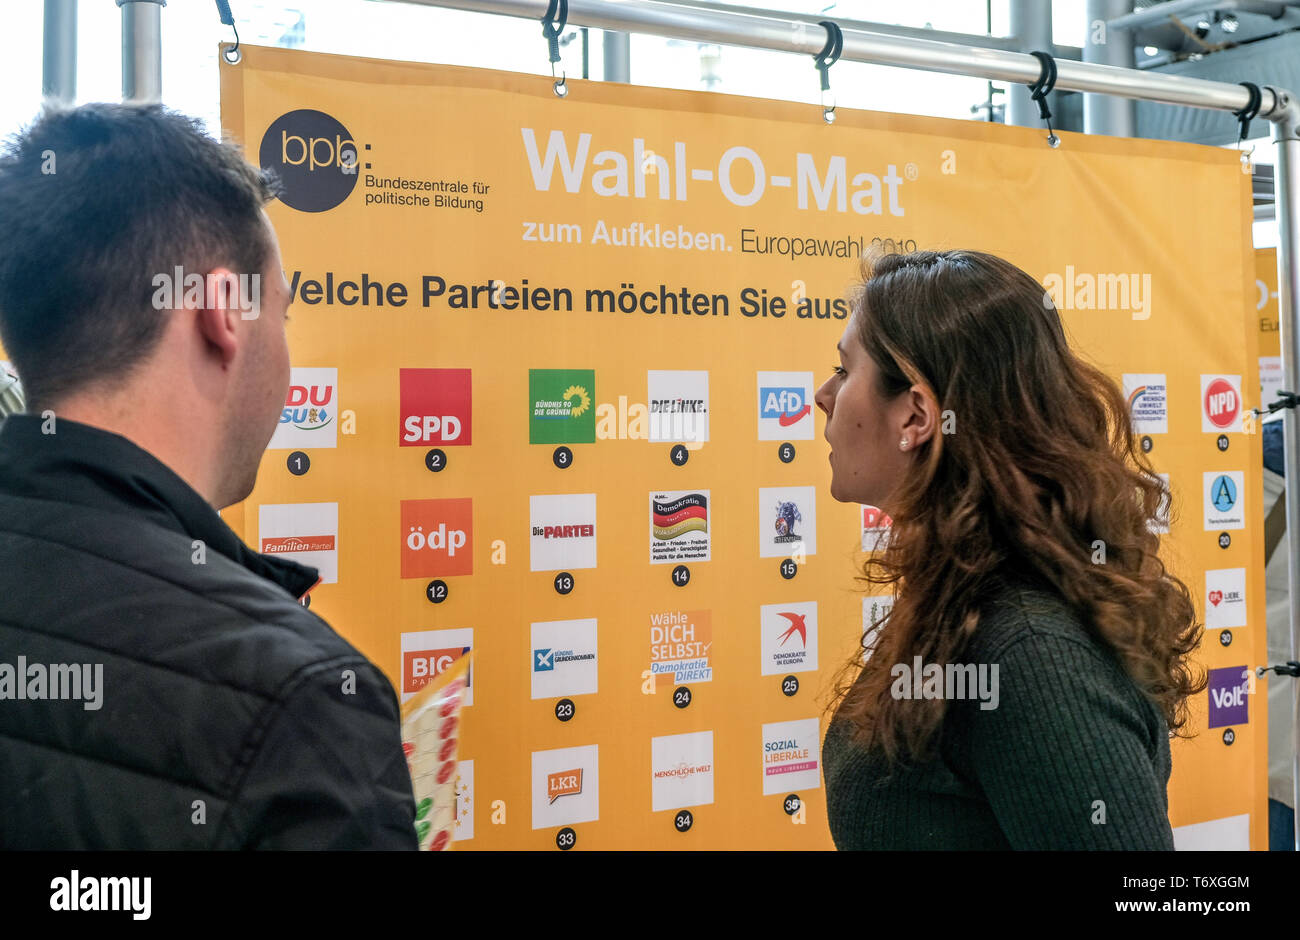 Magdeburg, Germany. 03rd May, 2019. Passers-by test the Wahl-O-Mat for the European elections. The Wahl-O-Mat of the Federal Agency for Civic Education has been in existence since 2002. The Federal Central Office will again offer decision support for the 2019 European elections on 26 May. 38 theses on 41 parties will then be available to voters in advance in order to assist them in making a decision during the election. Credit: Peter Förster/dpa-Zentralbild/ZB/dpa/Alamy Live News Stock Photo